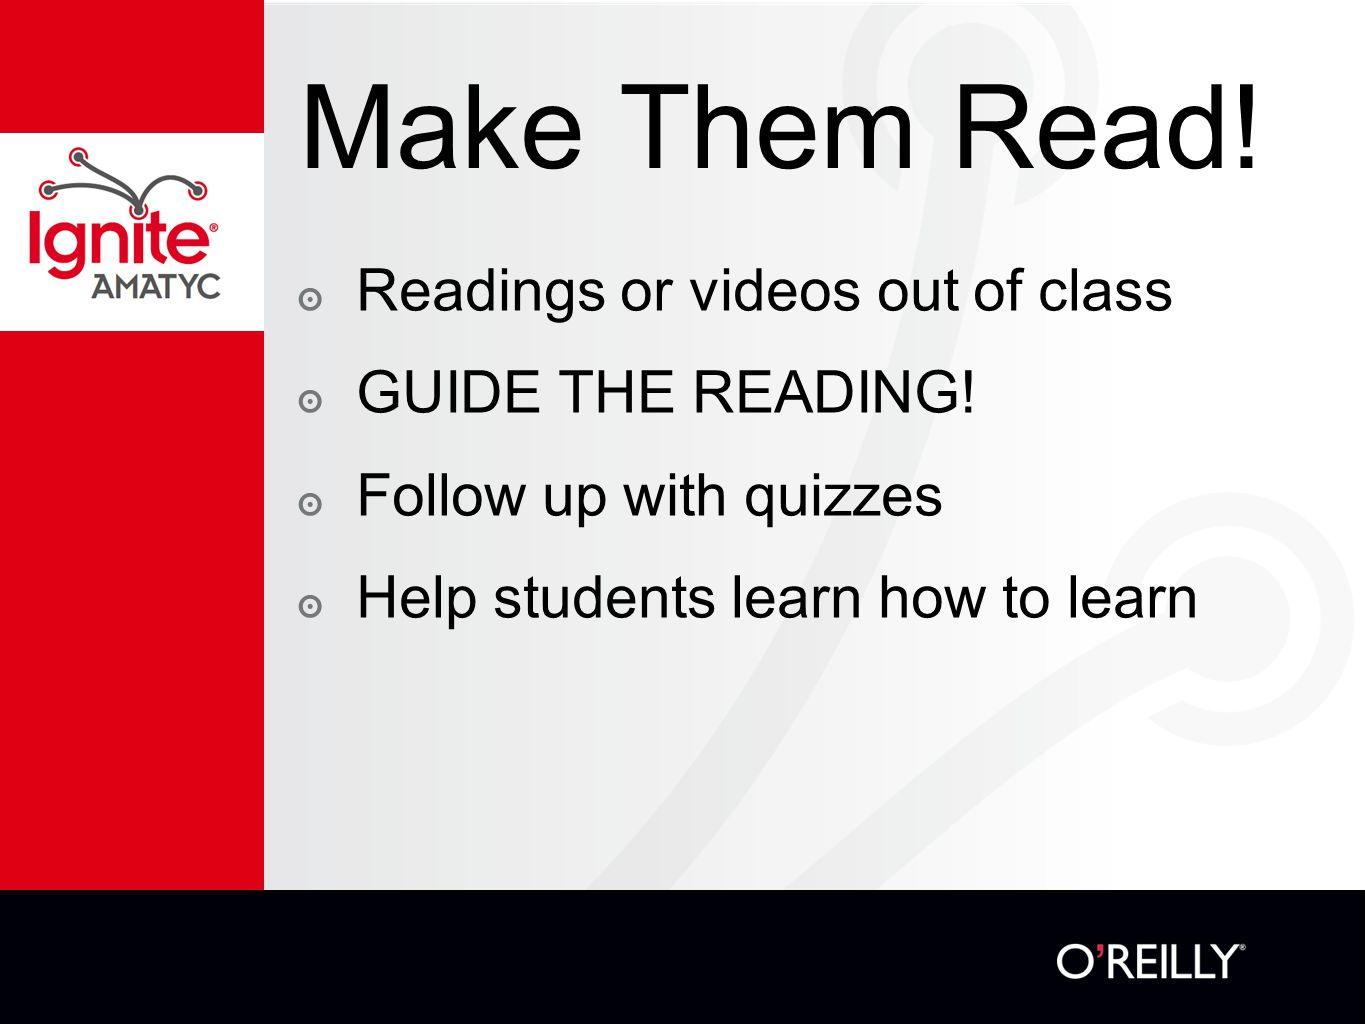 Make Them Read! ๏ Readings or videos out of class ๏ GUIDE THE READING! ๏ Follow up with quizzes ๏ Help students learn how to learn